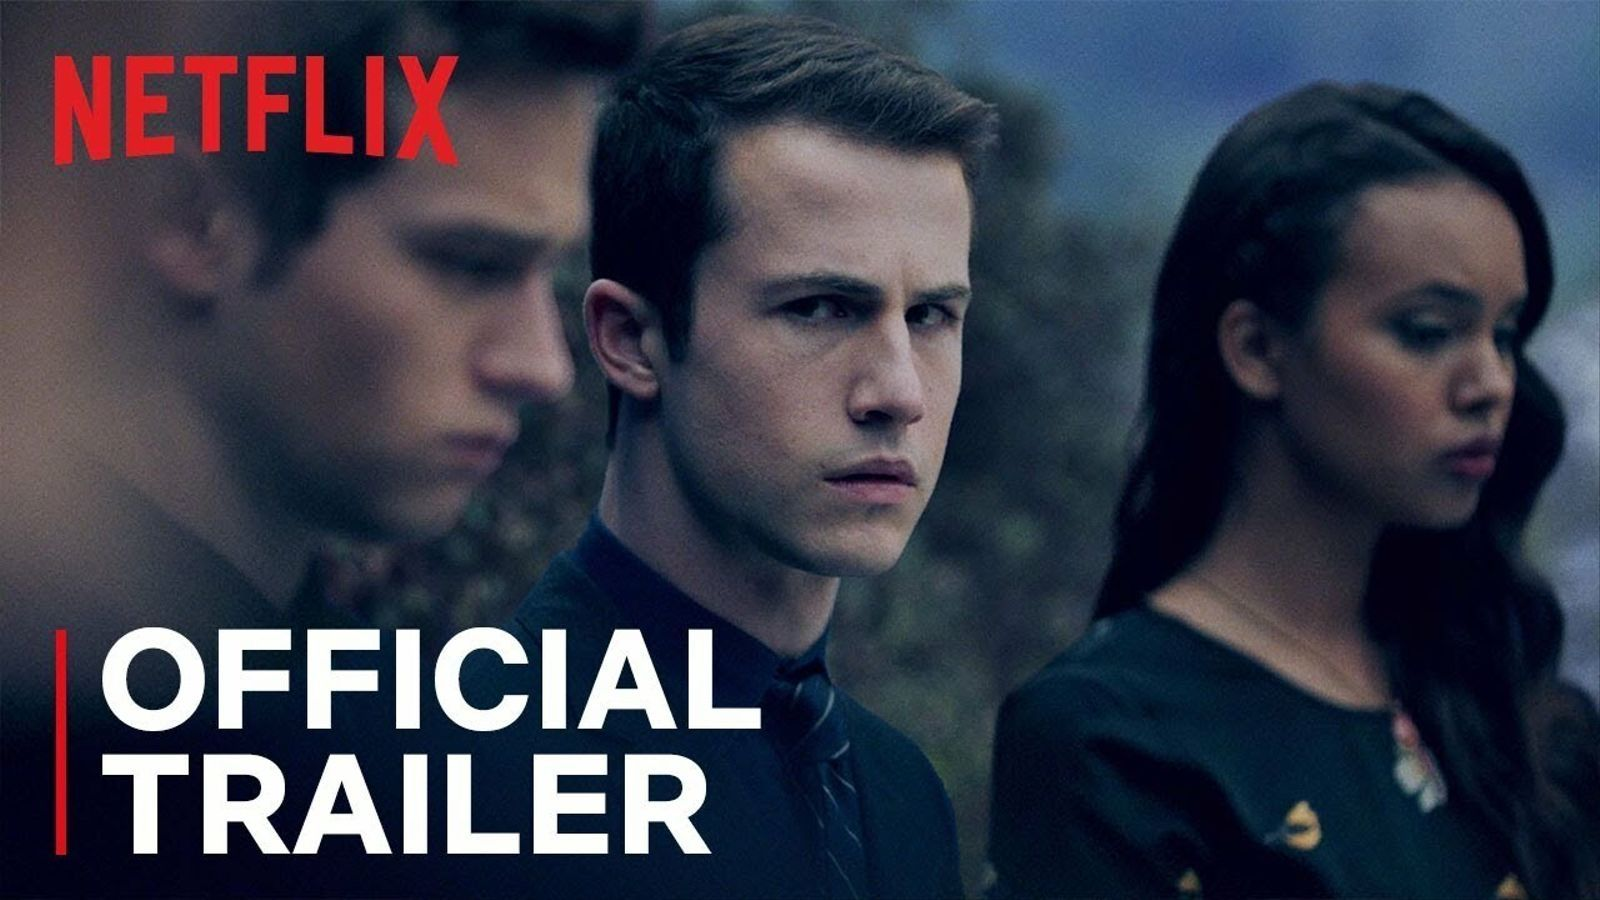 Tràiler tercera temporada '13 reasons why'